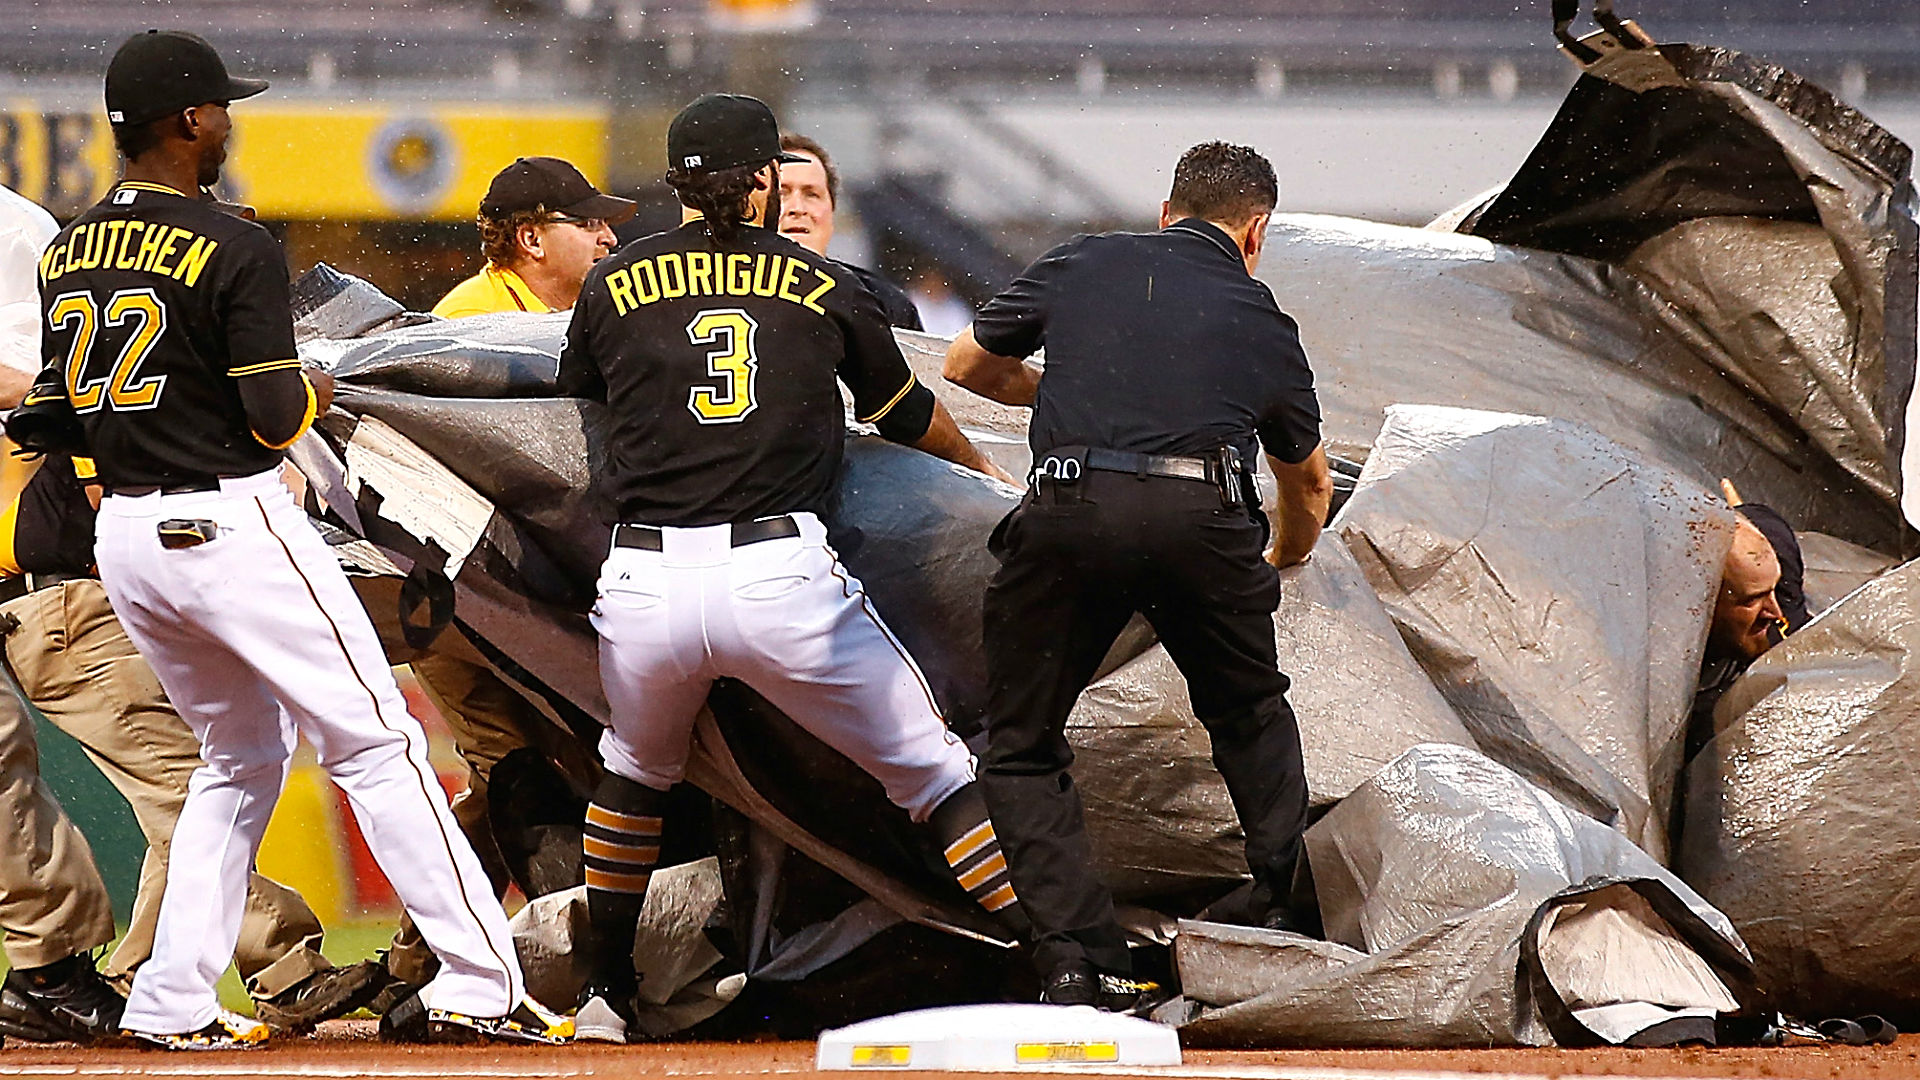 Andrew McCutchen, Pirates help rescue groundskeeper during storm